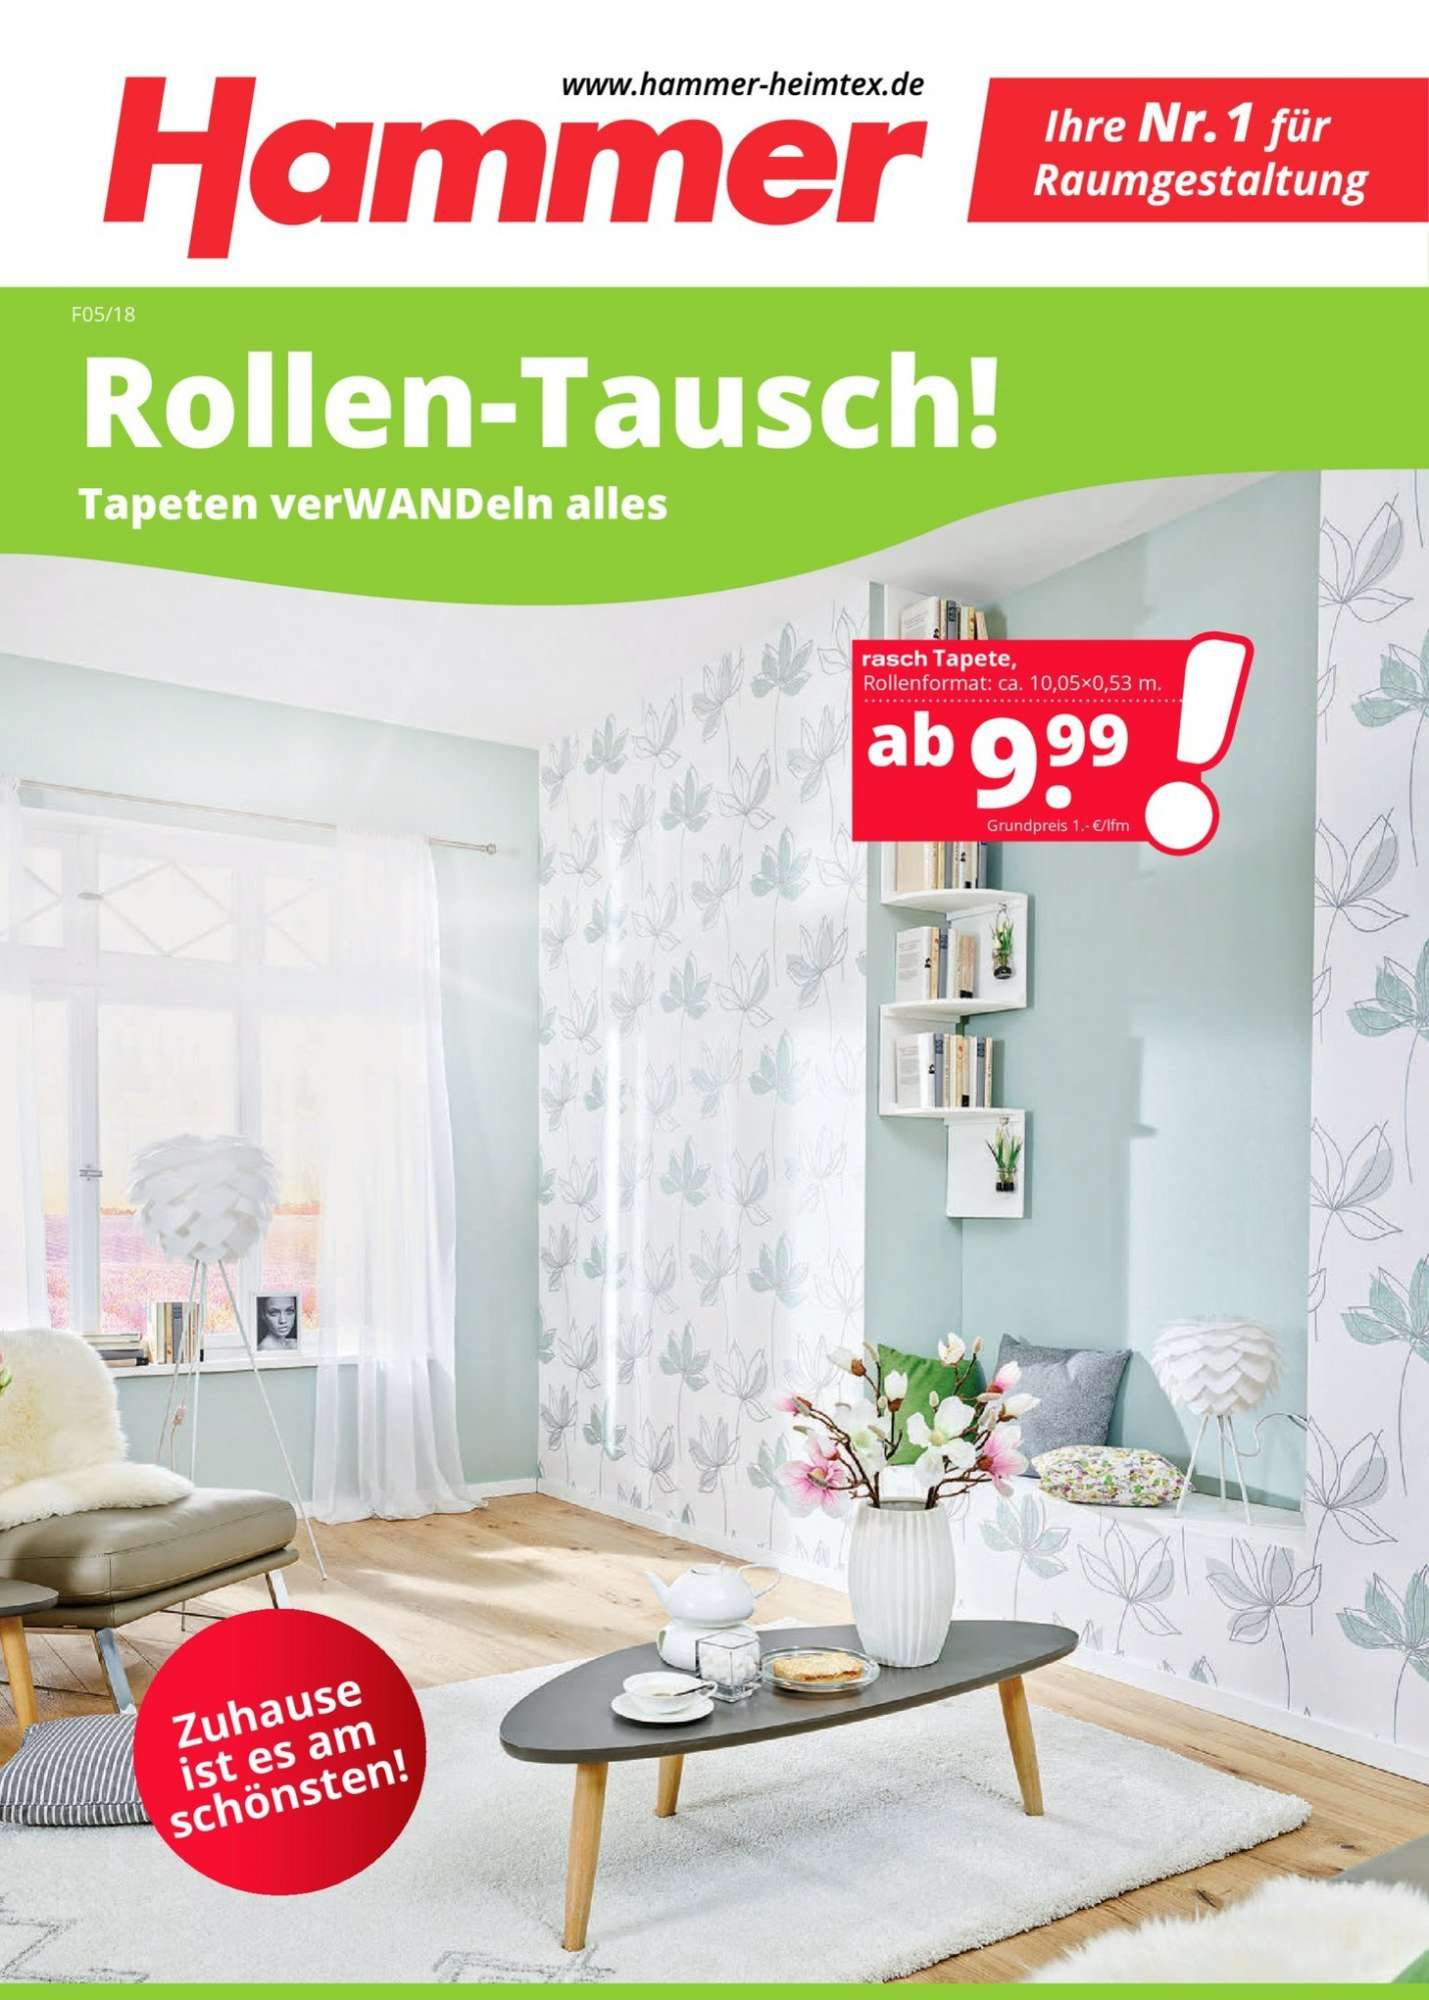 hammer baumarkt tapeten great hammer teppiche fabulous. Black Bedroom Furniture Sets. Home Design Ideas